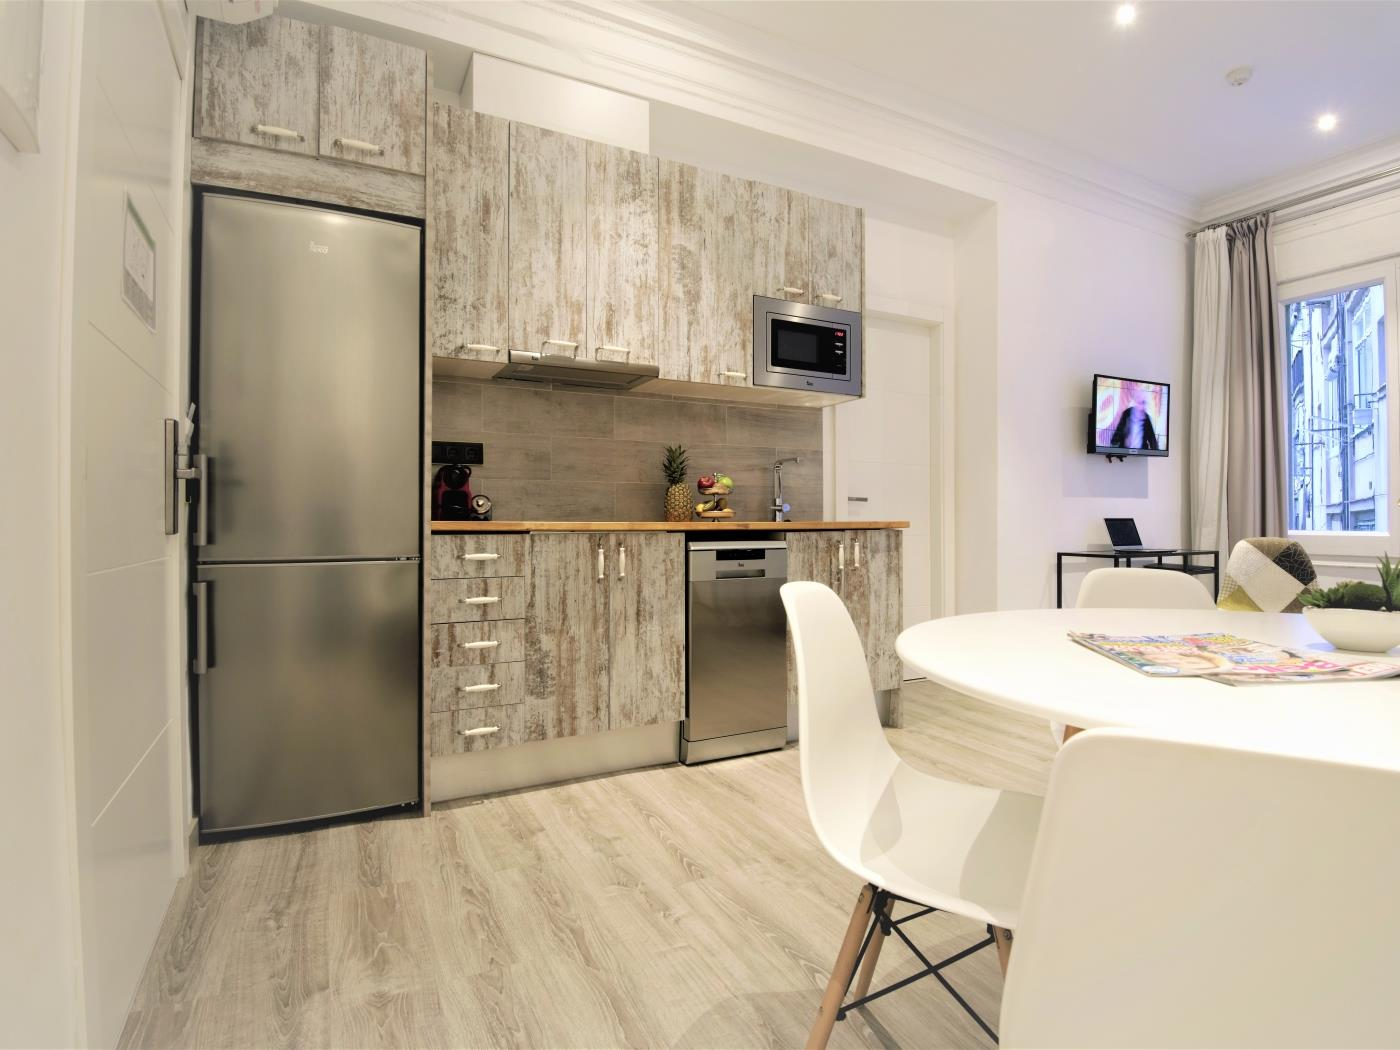 City Center Diagonal spacious apartment for 4 - My Space Barcelona Appartementen